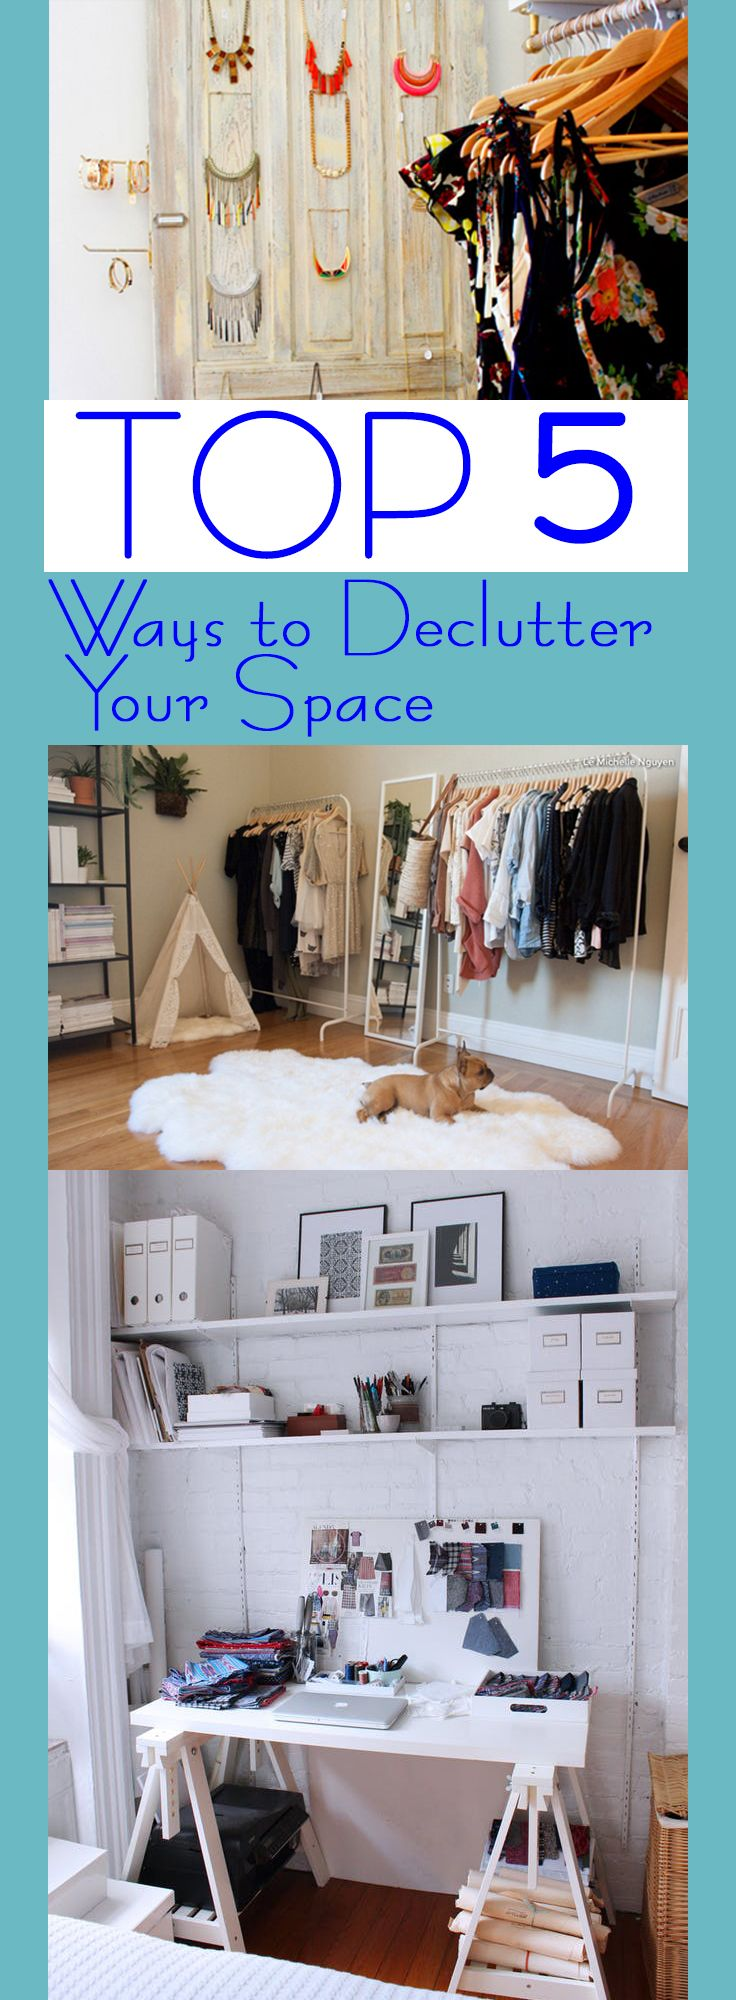 Top 5 Ways to Declutter Your Space – Random Somethings